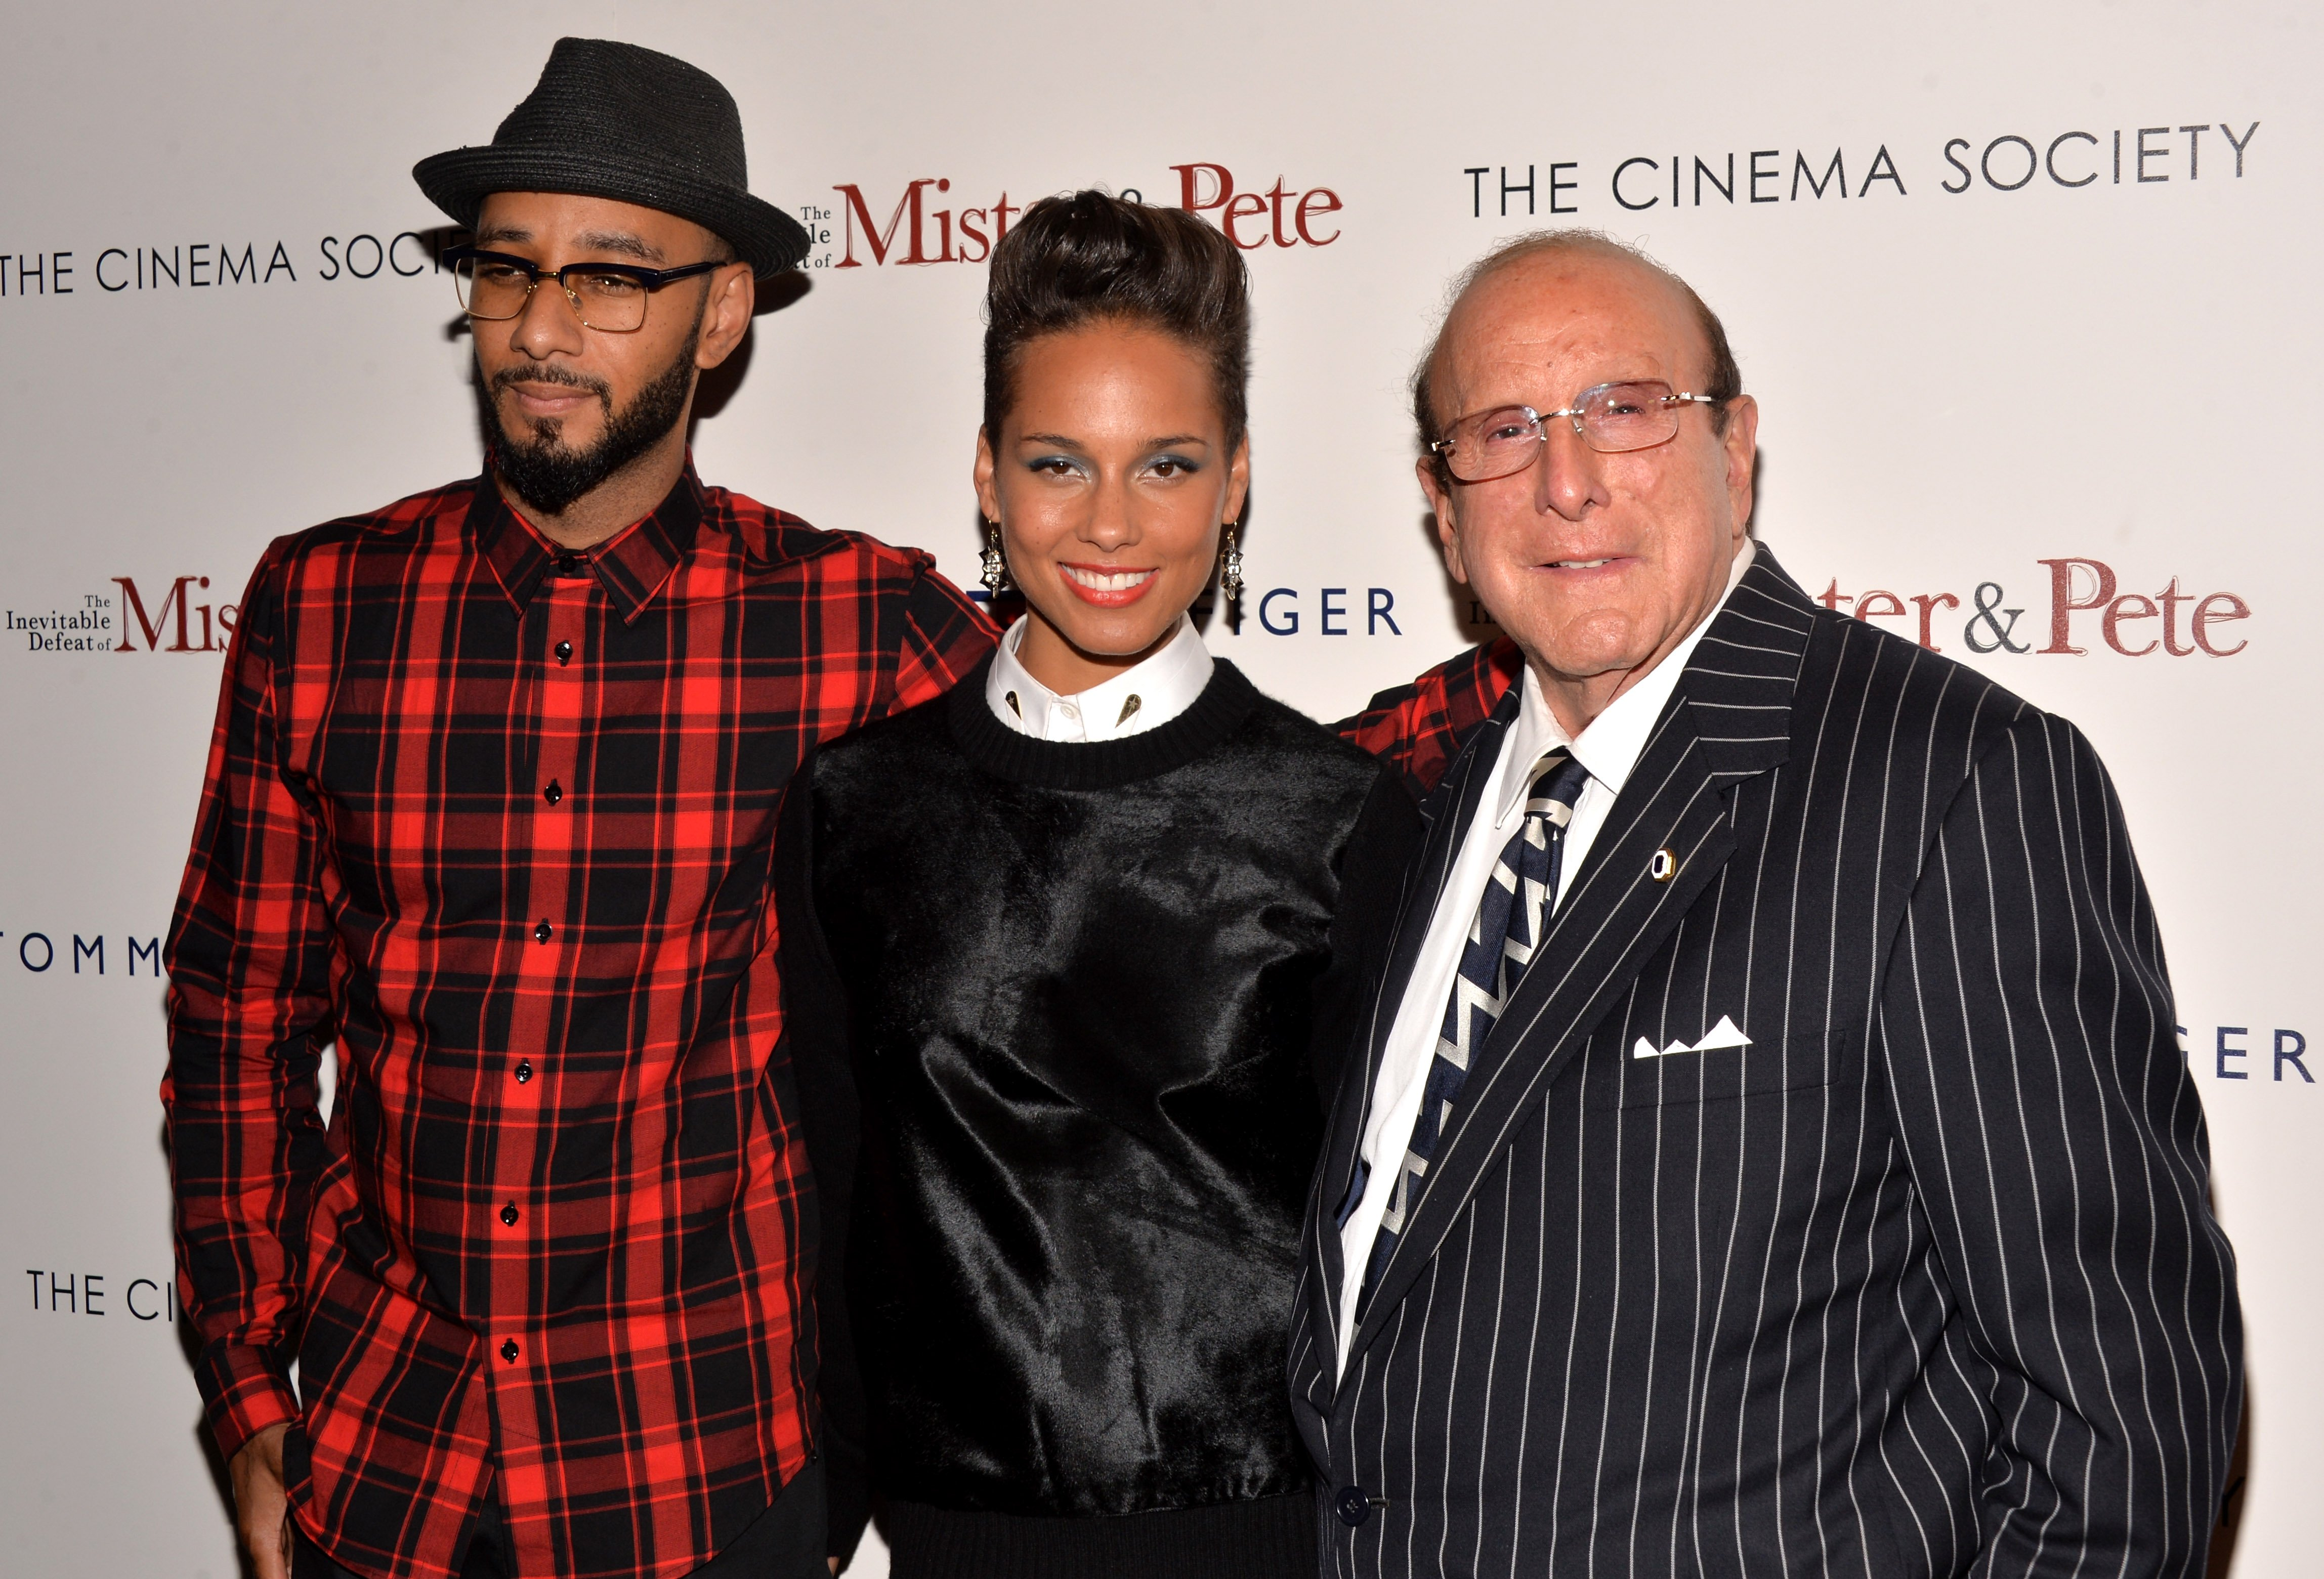 Swizz Beatz, Alicia Keys and Record producer Clive Davis attend The Cinema Society & Tommy Hilfiger screening of 'The Inevitable Defeat of Mister & Pete' at Tribeca Grand Screening Room on October 2, 2013 in New York City